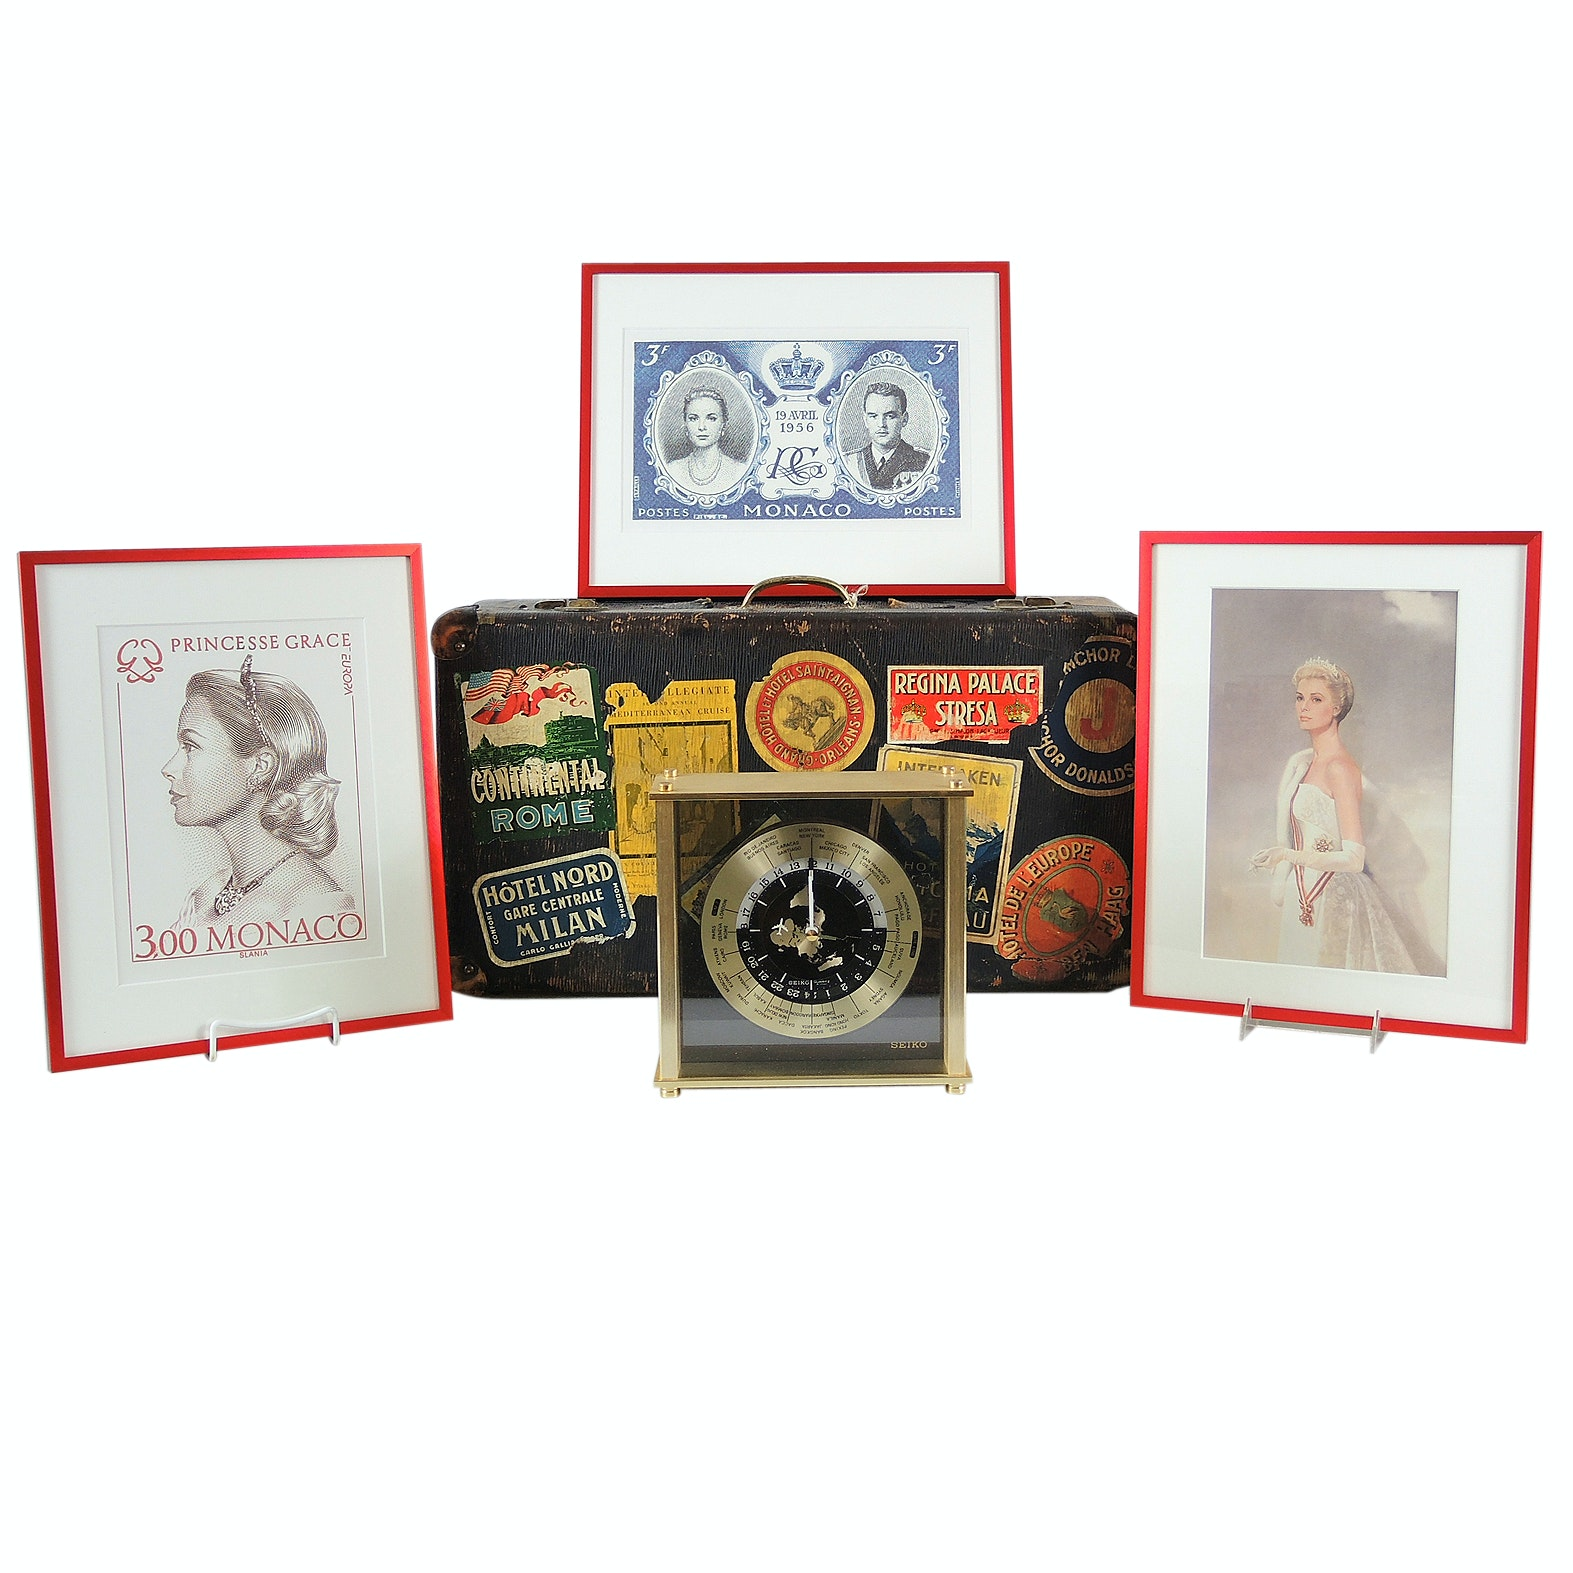 World Traveled Suitcase with Stickers, Seiko World Clock and Monaco Stamp Prints